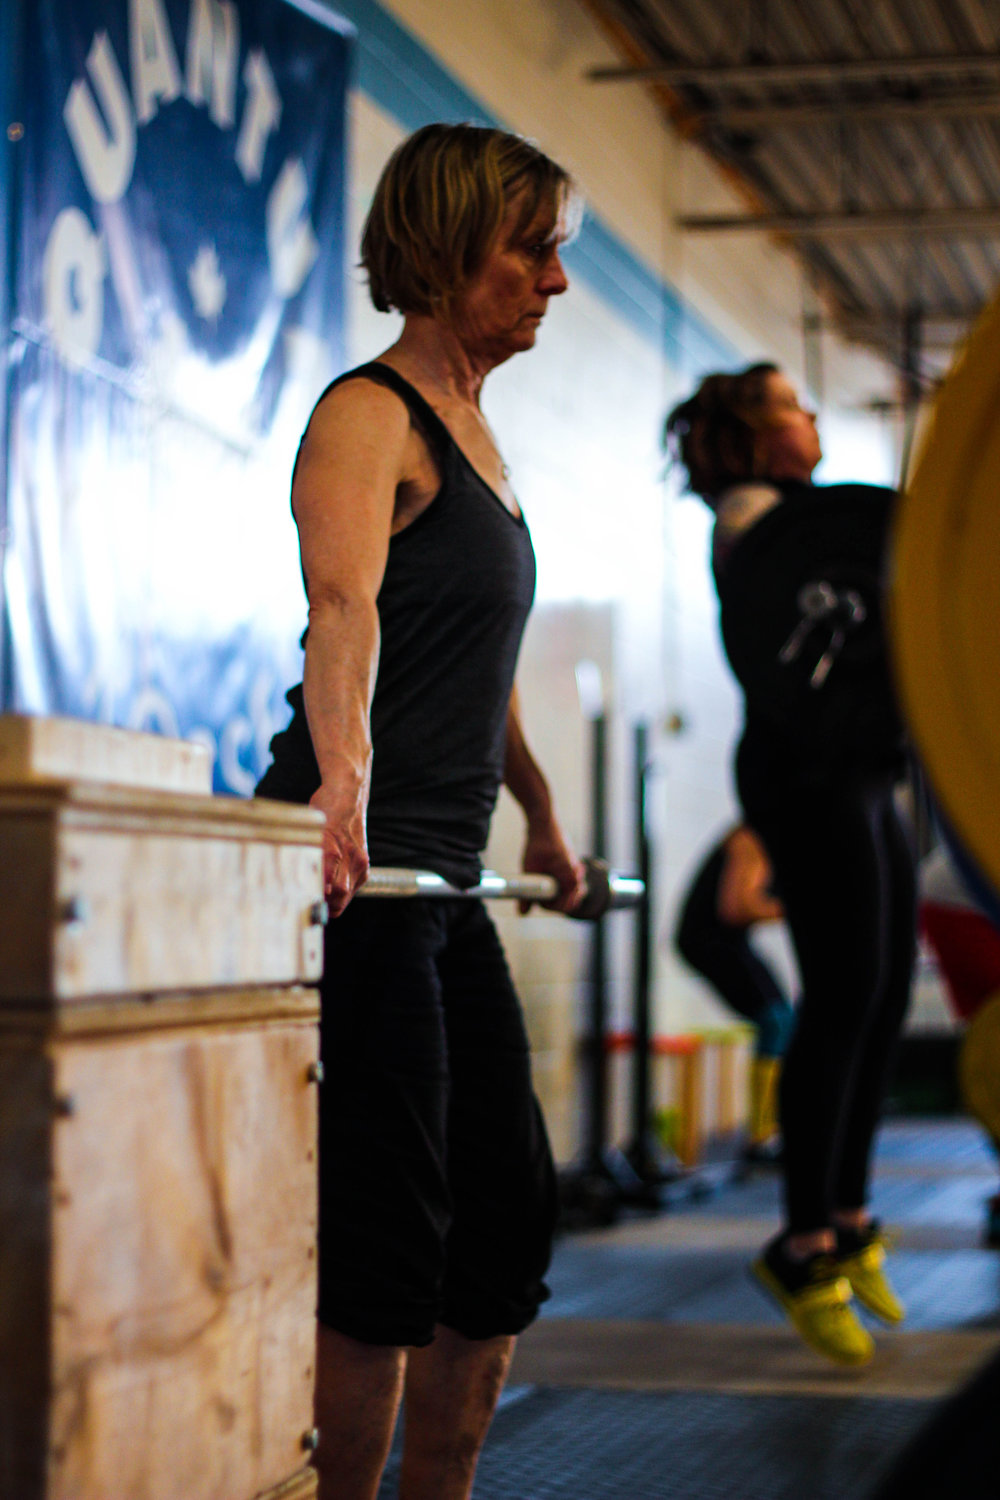 leaside women's fitness program 4.jpg